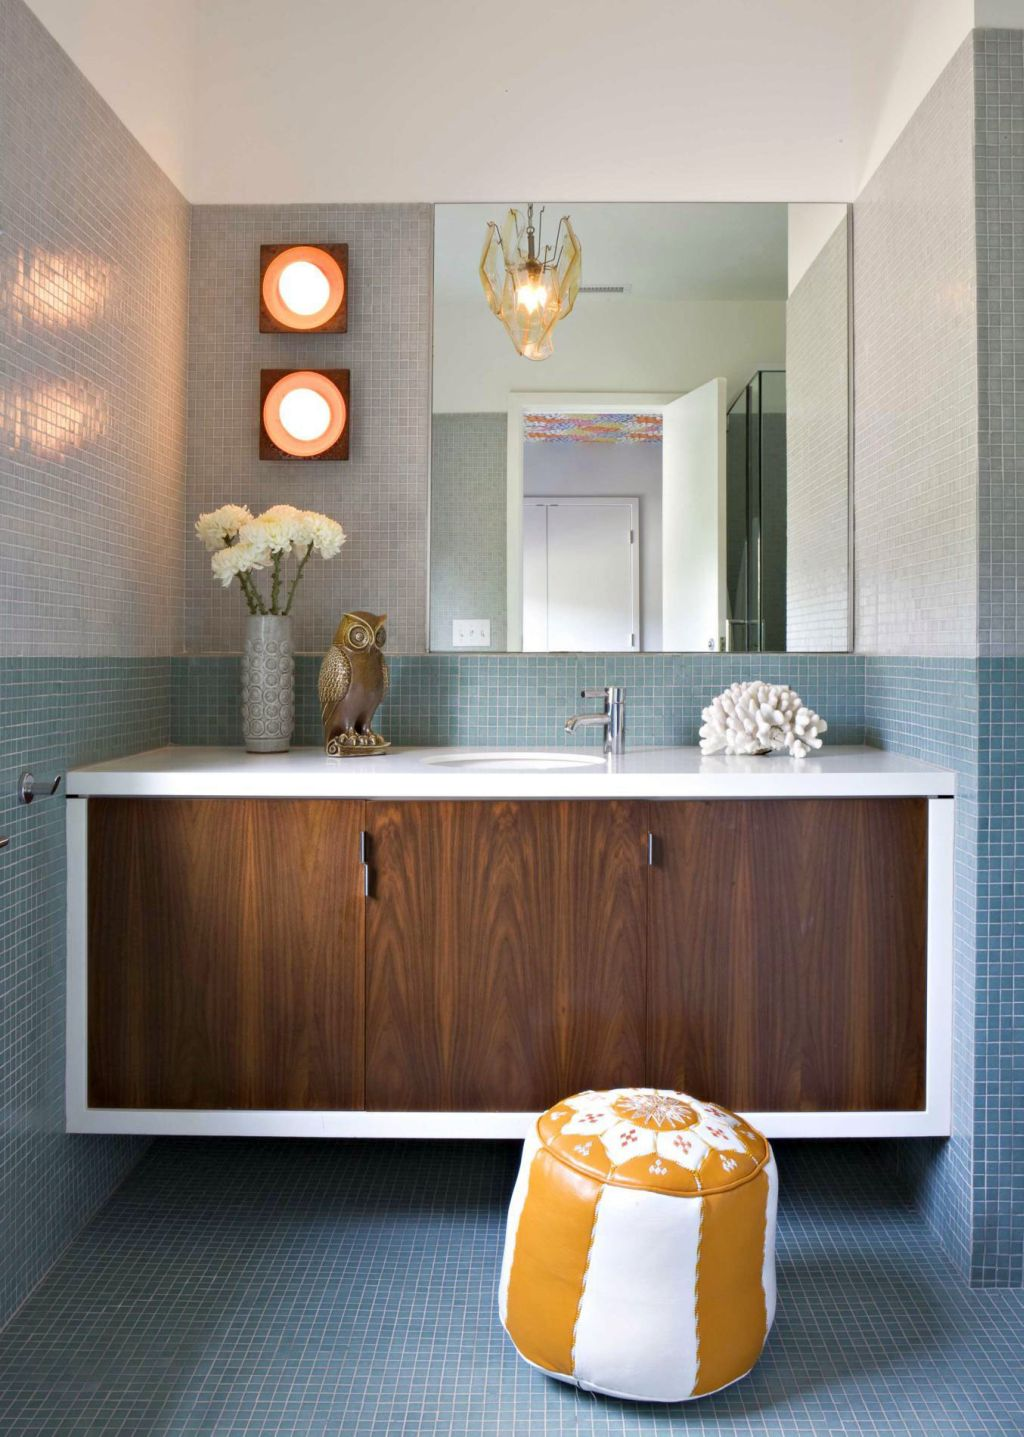 Bath Vanity Lighting Ideas : 20 Dazzling Bathroom Vanity Lighting Ideas